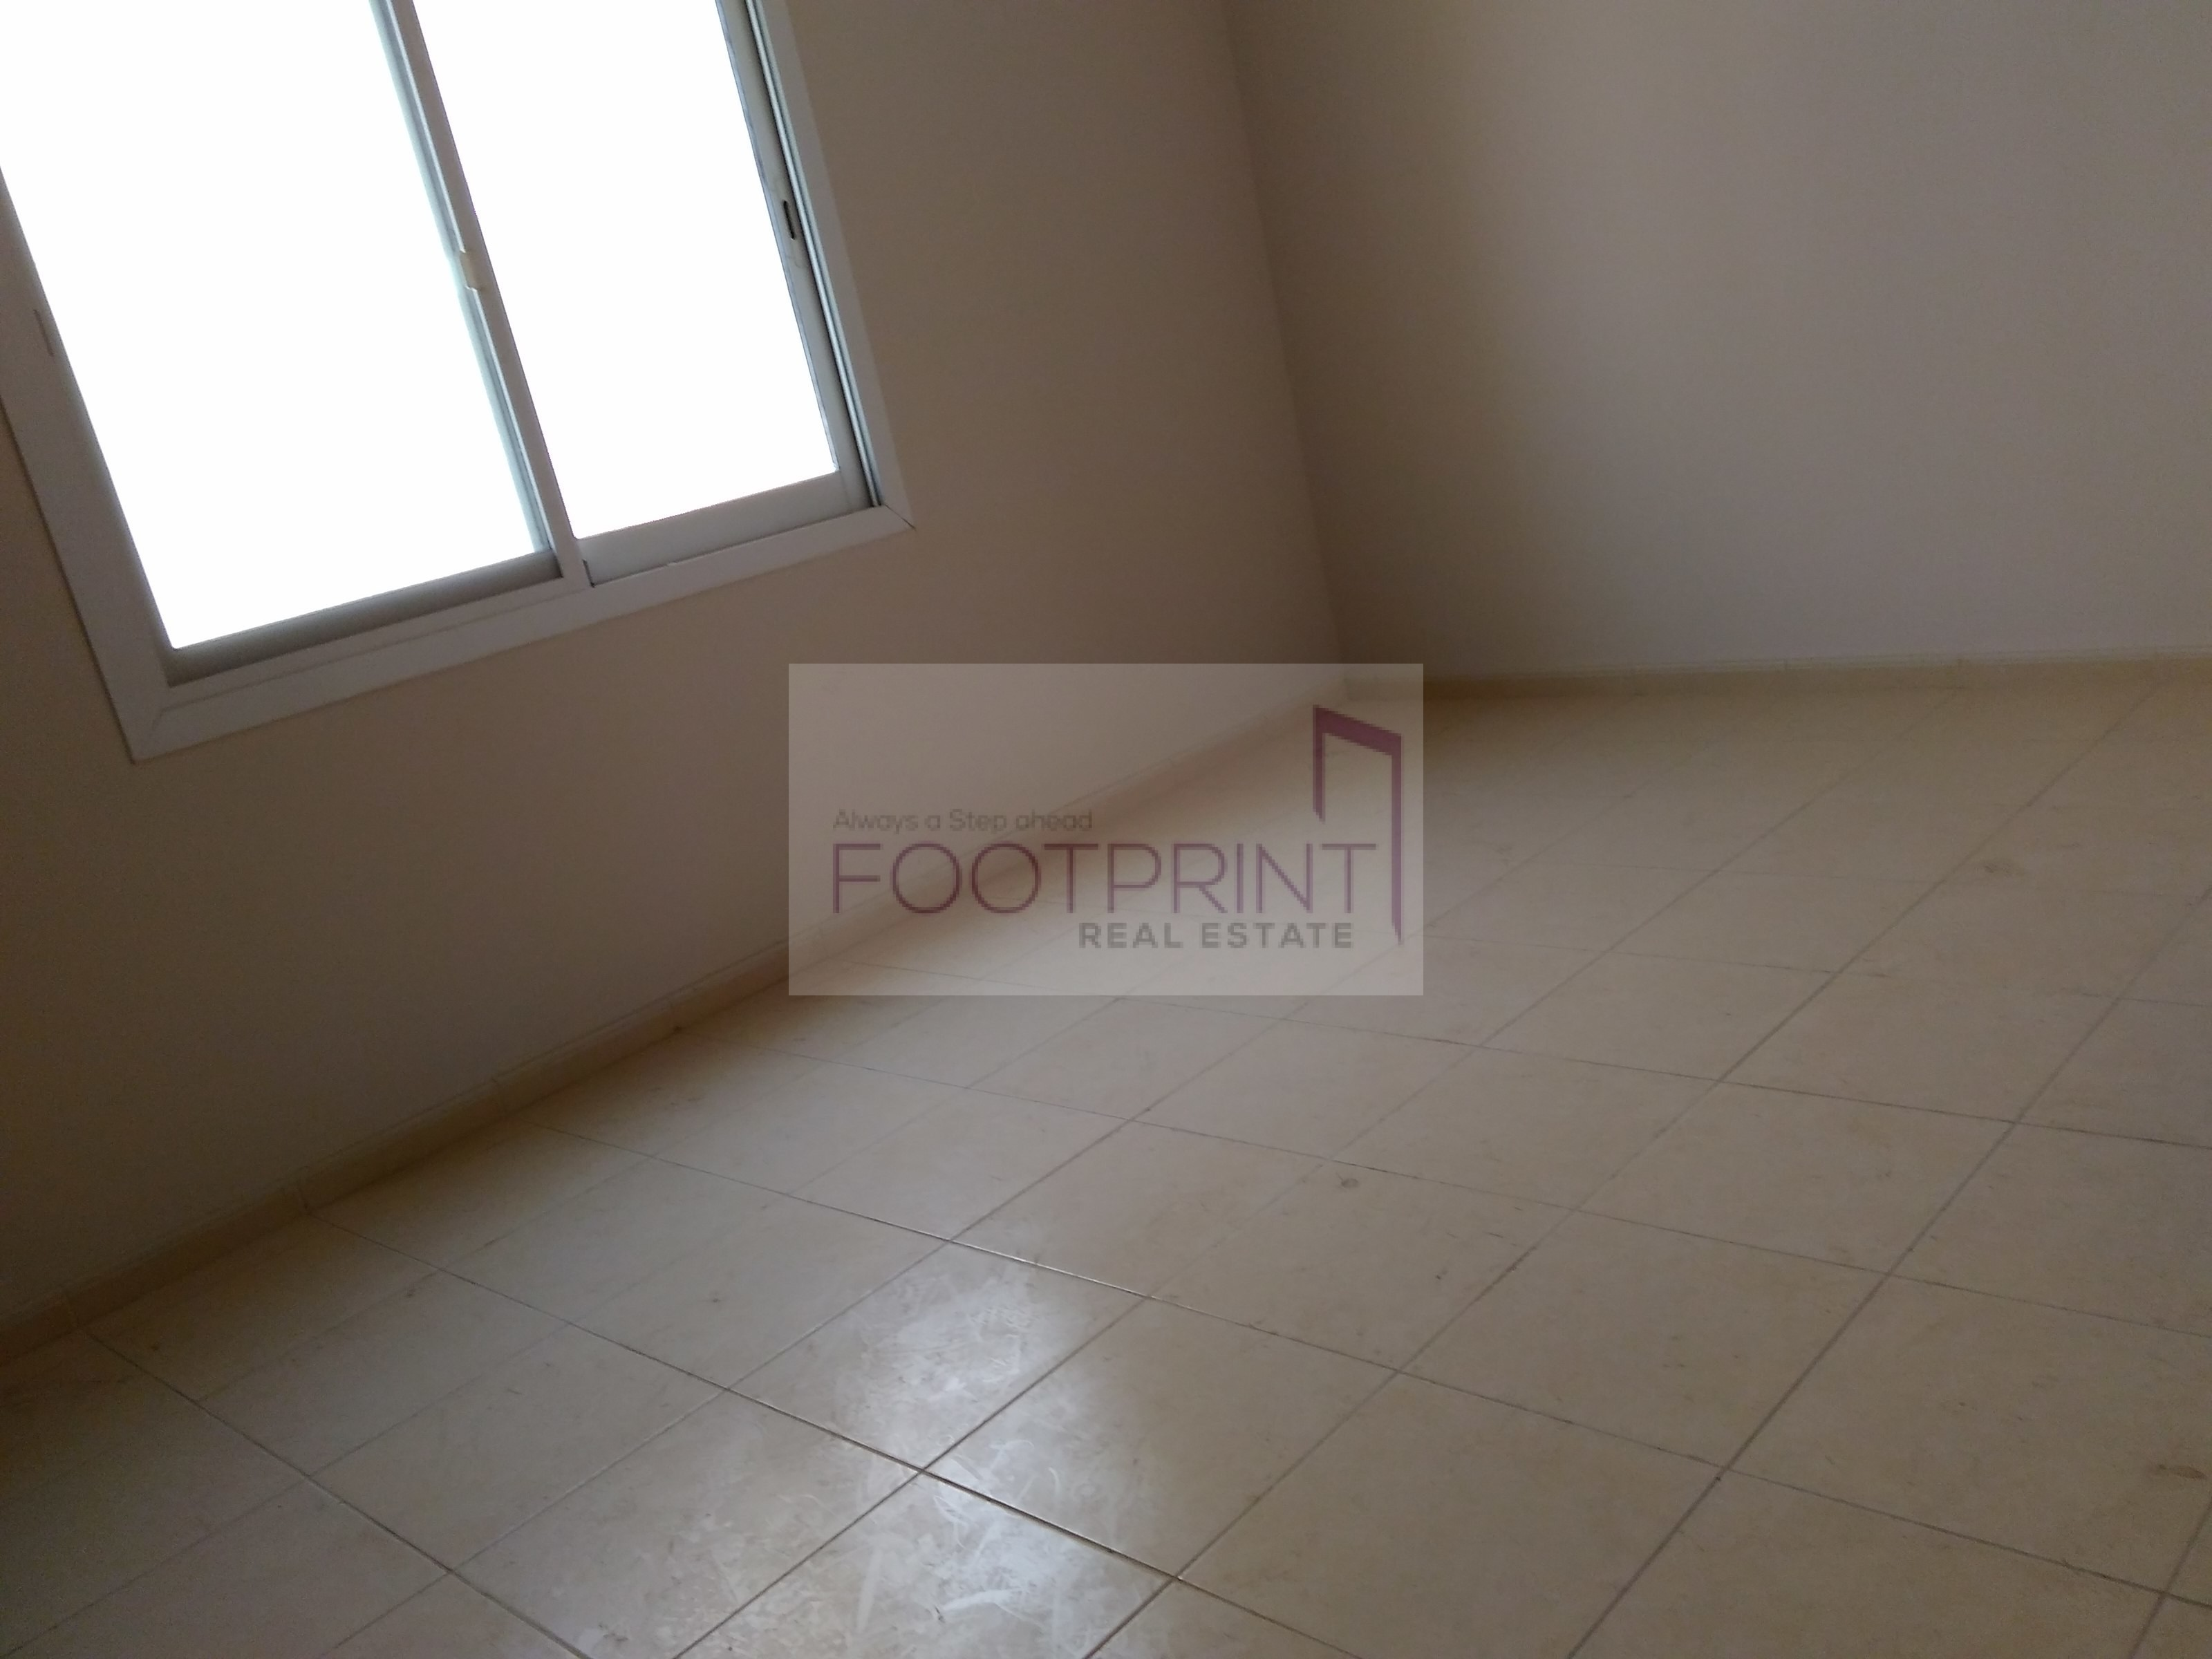 SEE IT TO BELIEVE: CHEAP 1BR+L FOR SALE